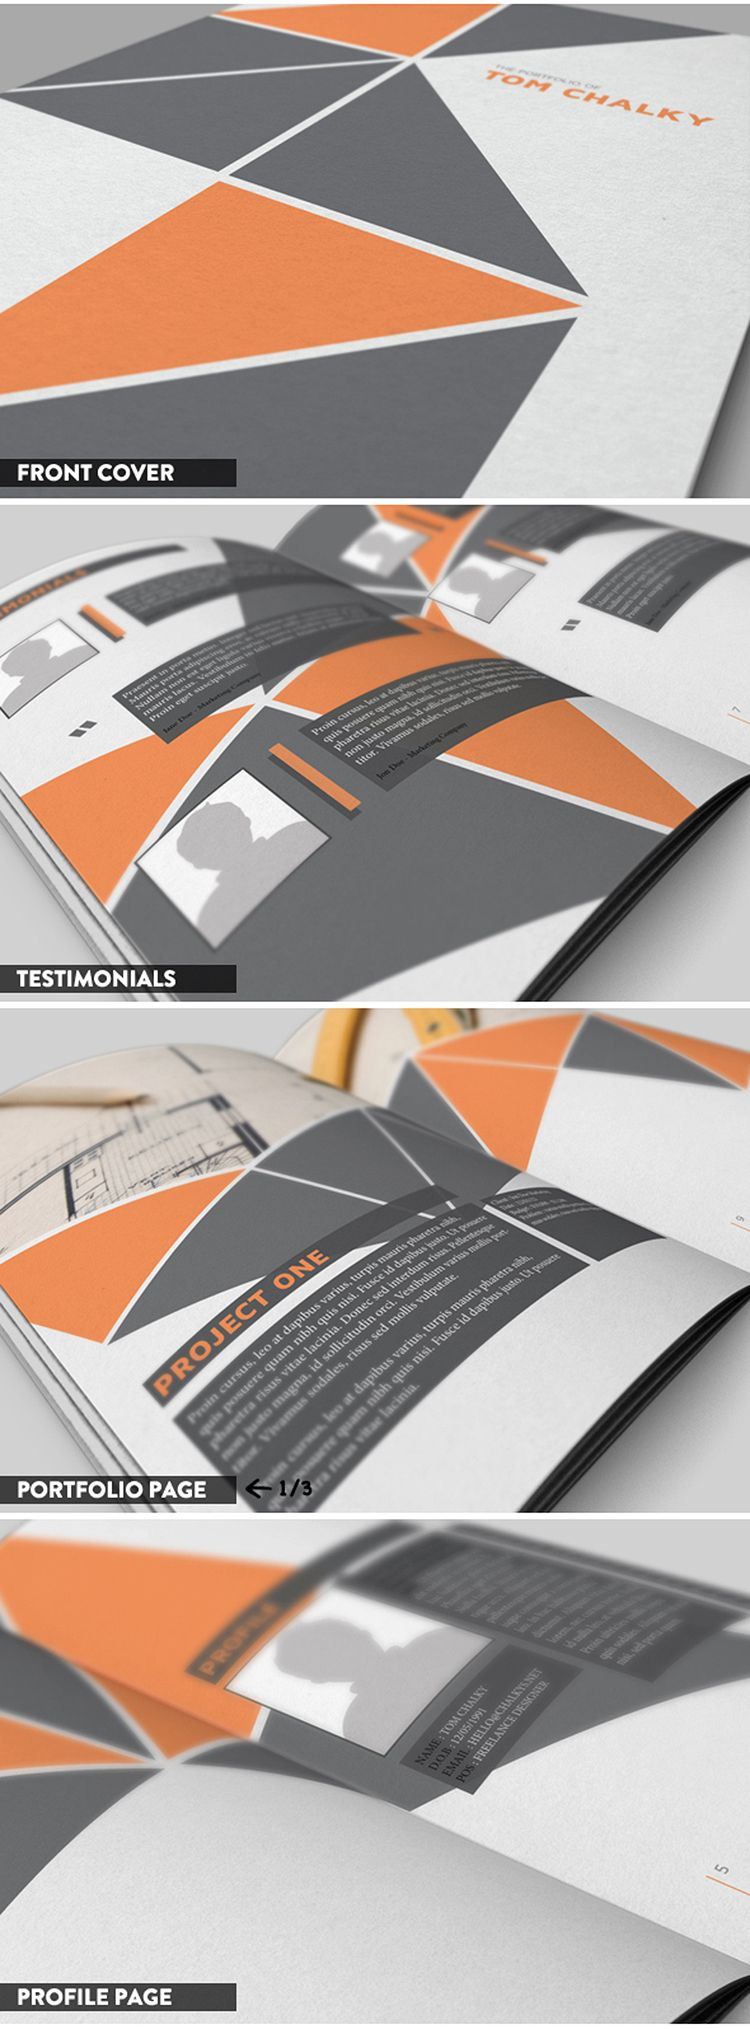 Case Study Template Design